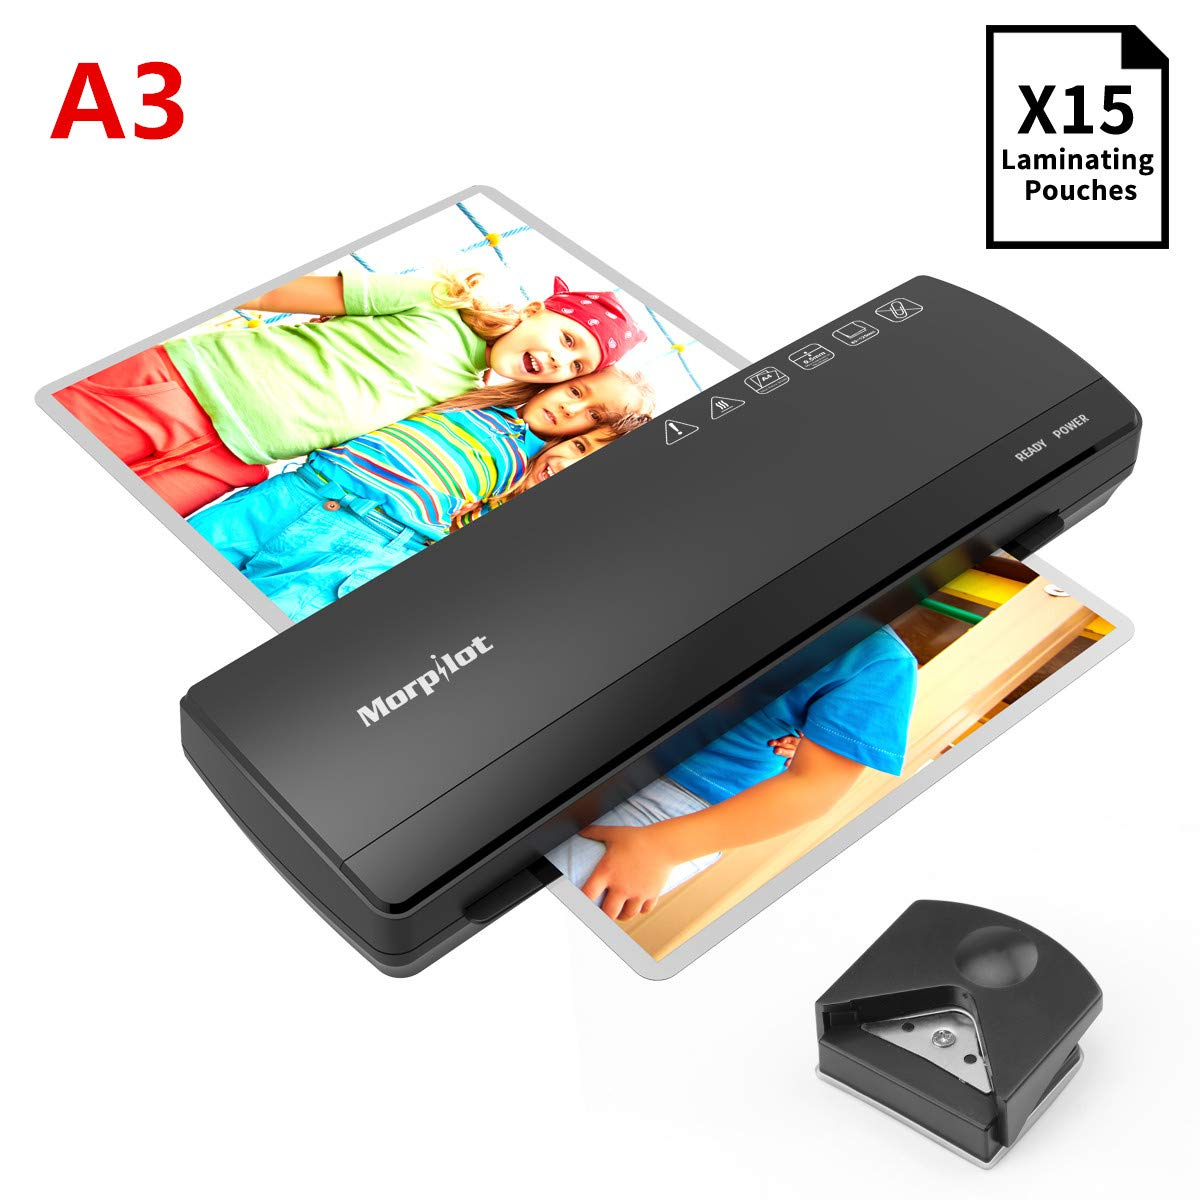 Morpilot A3 Laminator with 15 Pcs Laminating Pouches, Thermal Laminating 3-5 Mins Preheat, Support Plate/Corner Rounder, 2 Rolls Laminator.(Compatible with A4 Laminator,Laminating More Size Paper)